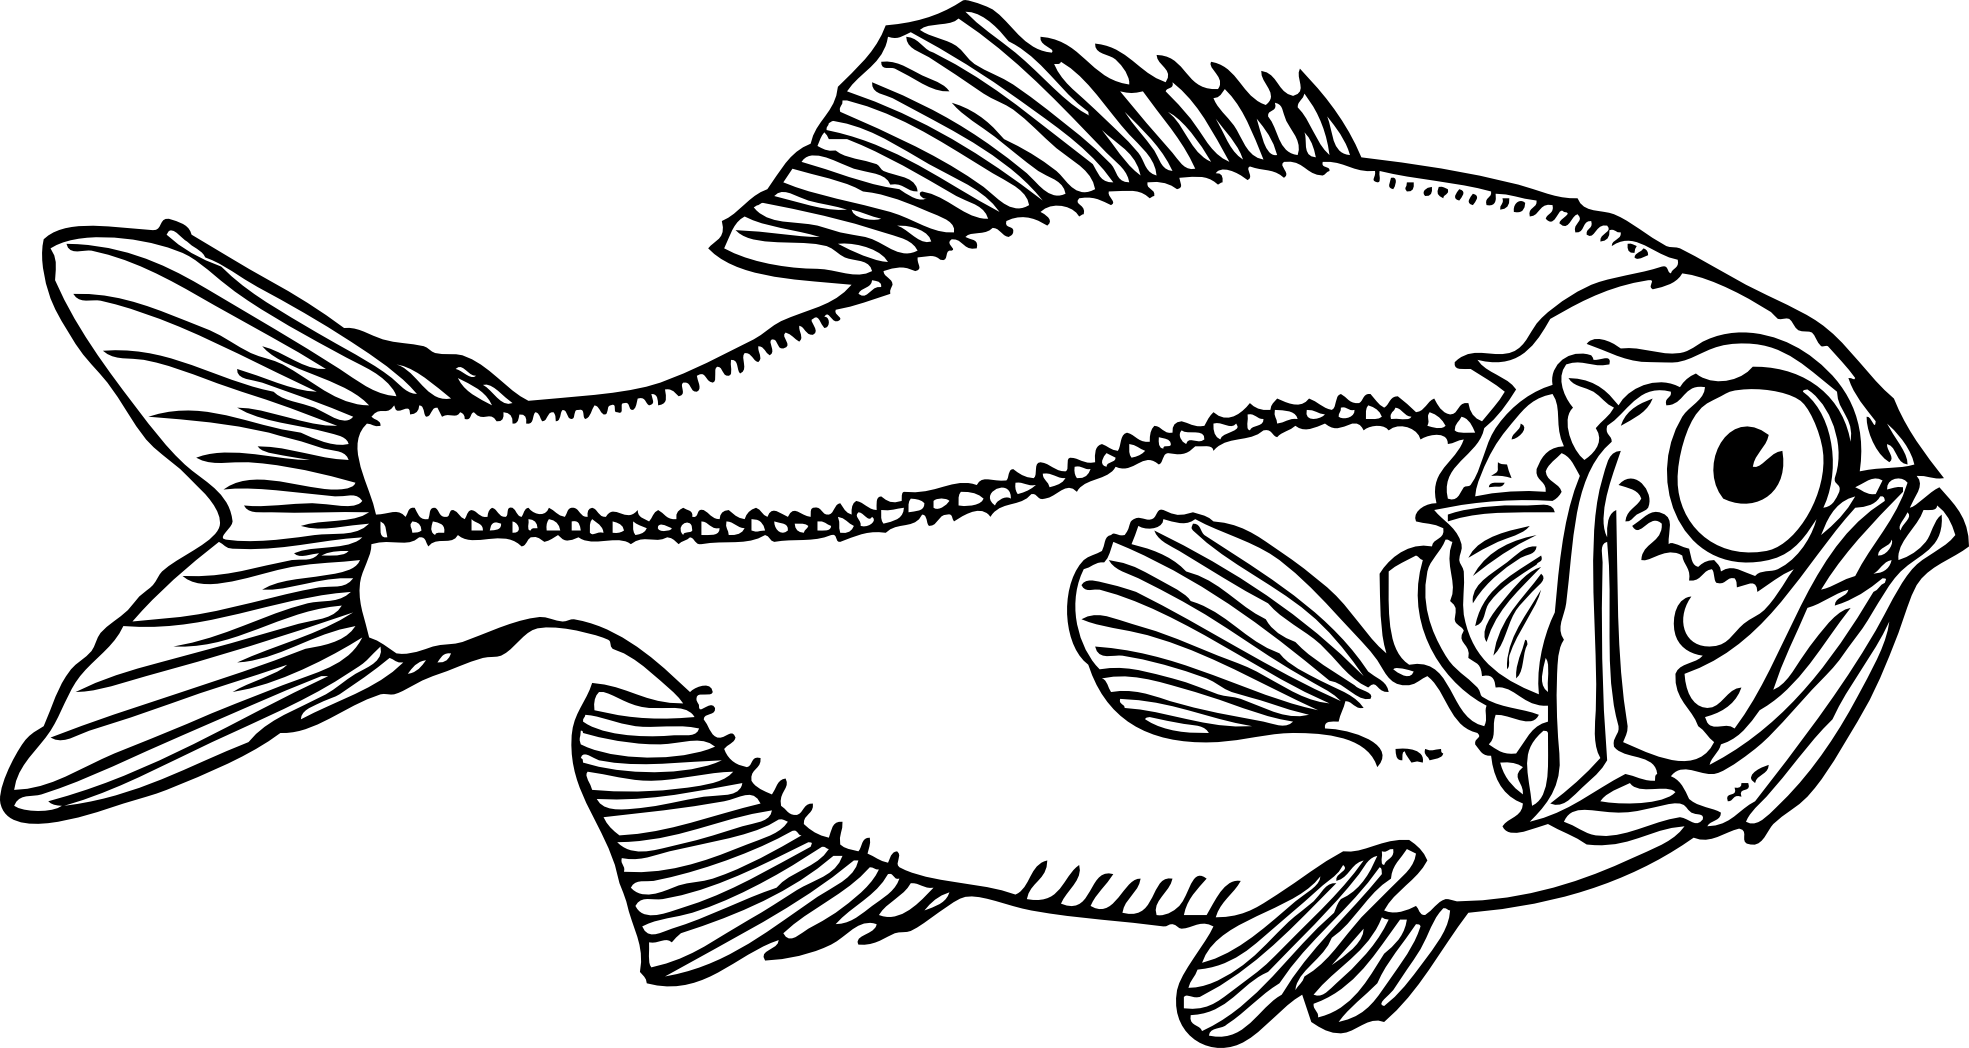 Line Art Year 5 : Fish line art cliparts